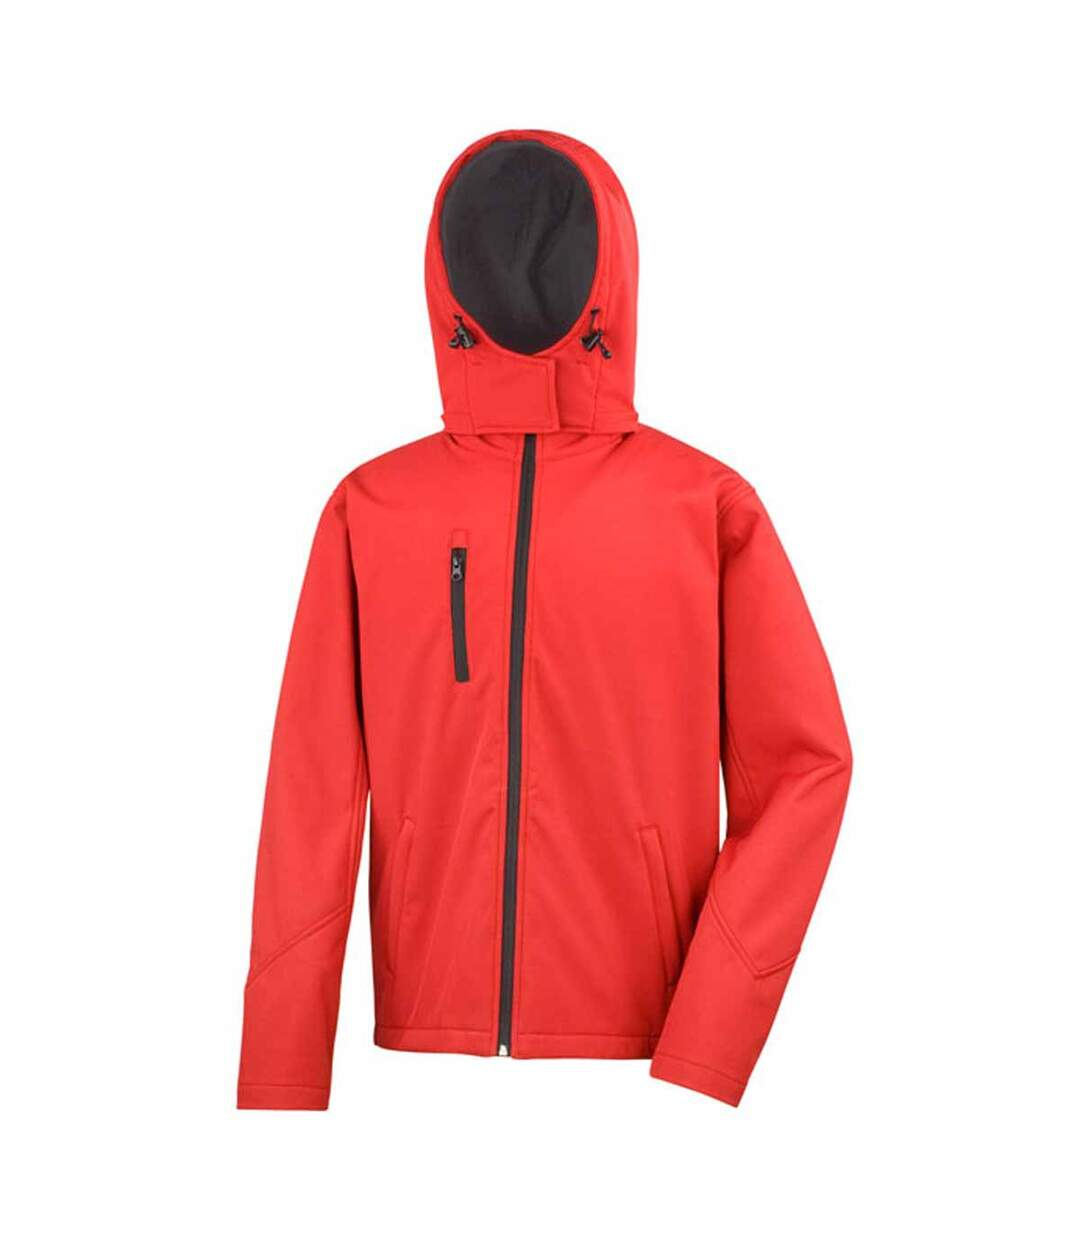 Veste softshell performance - R230M - Homme - rouge